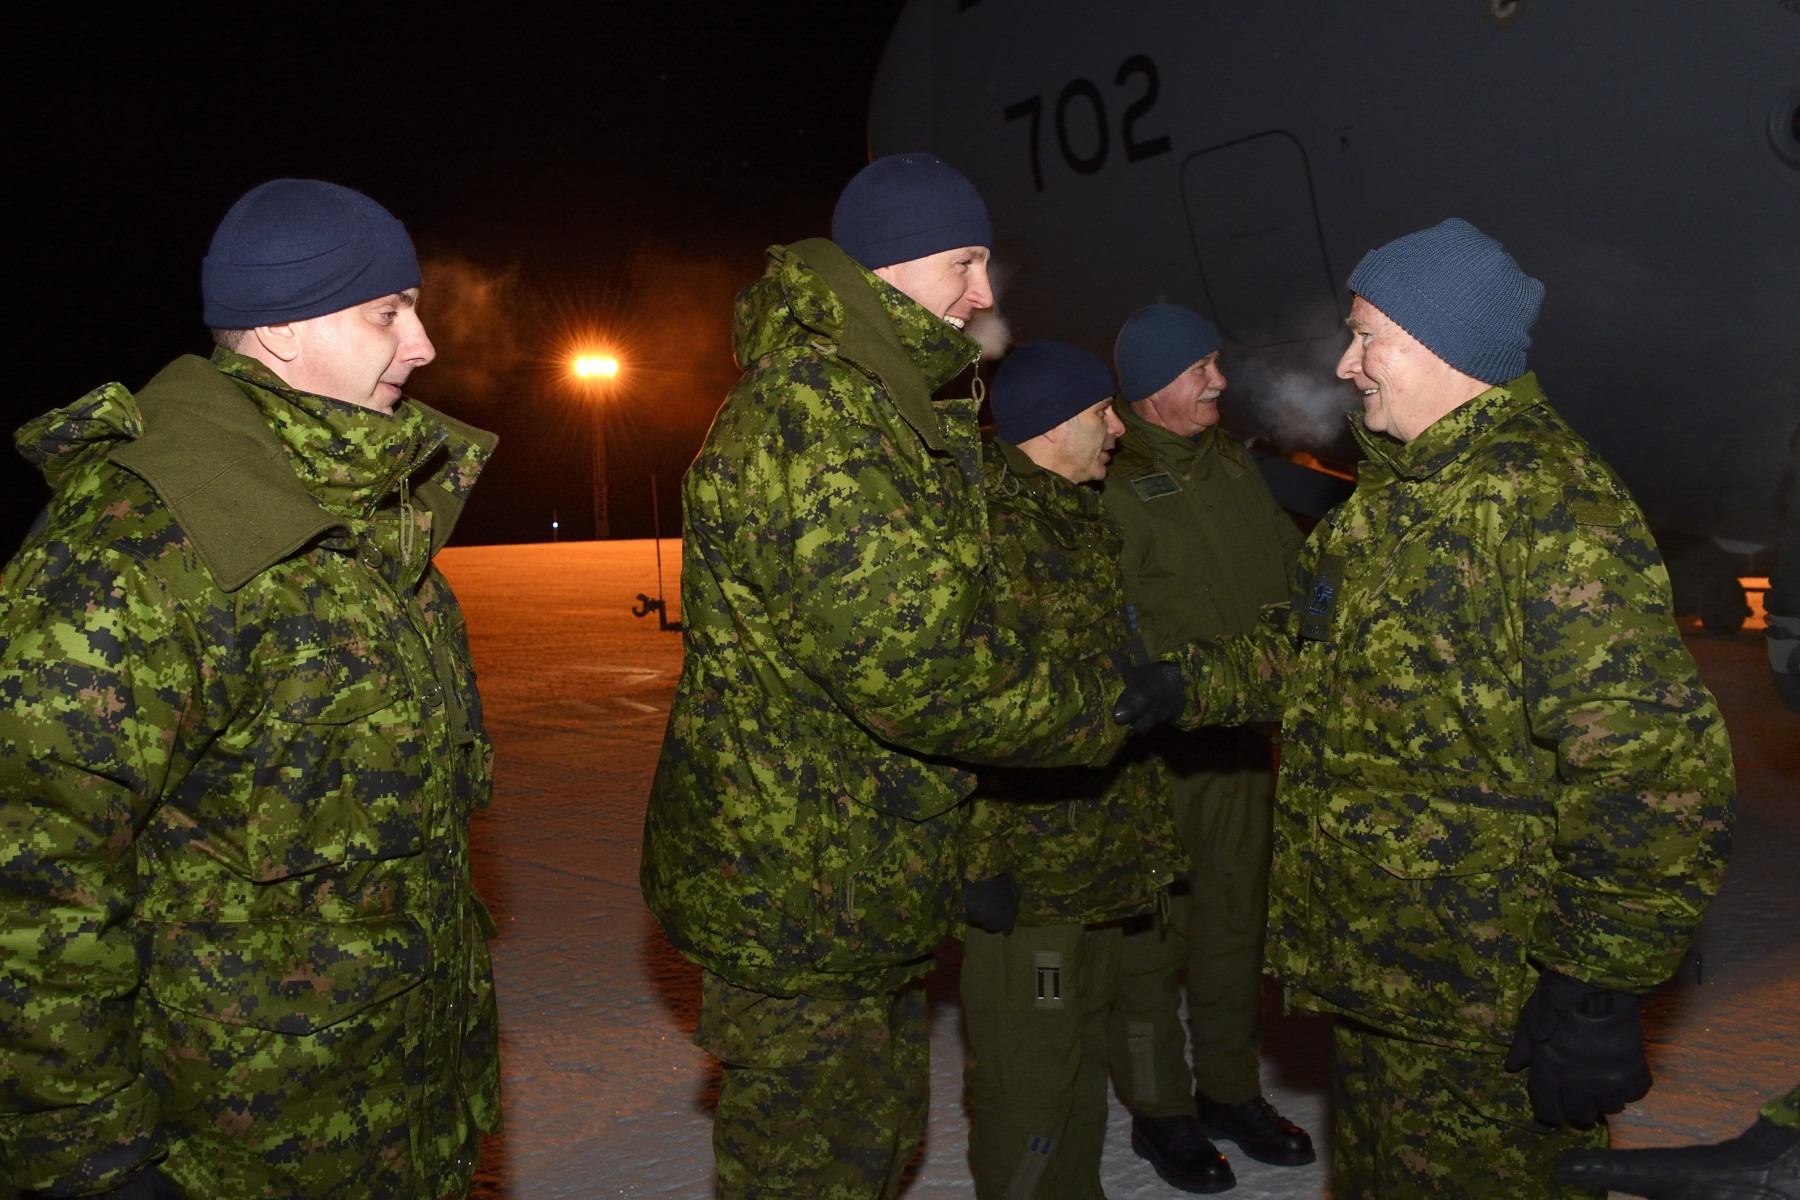 Upon arrival, His Excellency was welcomed by CFS Alert outgoing commander, Major Scott Marshall; incoming commander, Major Brian Tang; and CFS Alert Station warrant officer, Master Warrant Officer Didier Pignatel.